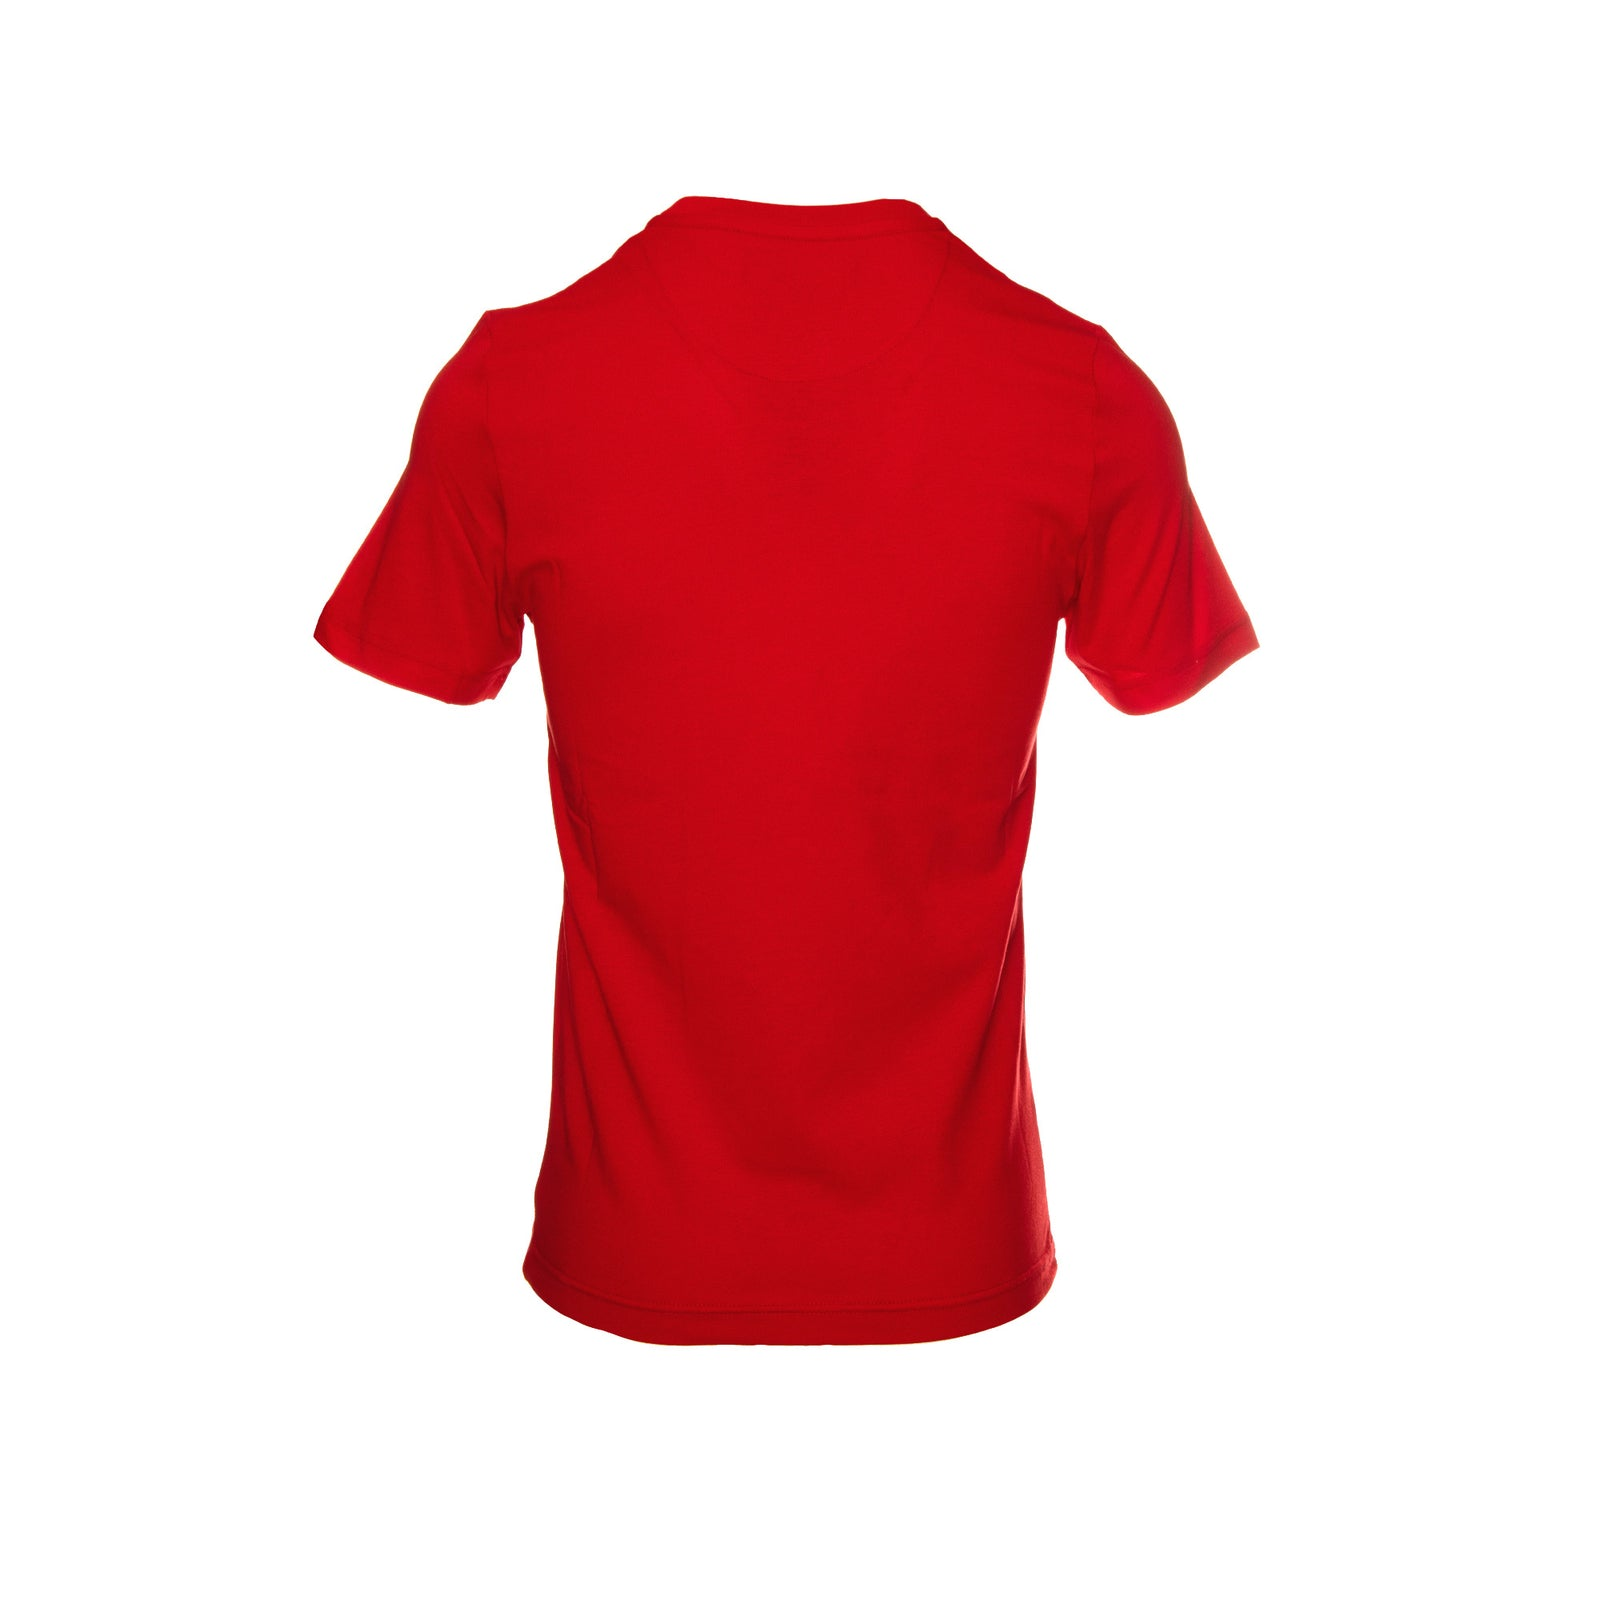 New LOVE Moschino classic men's short sleeve tee in red.